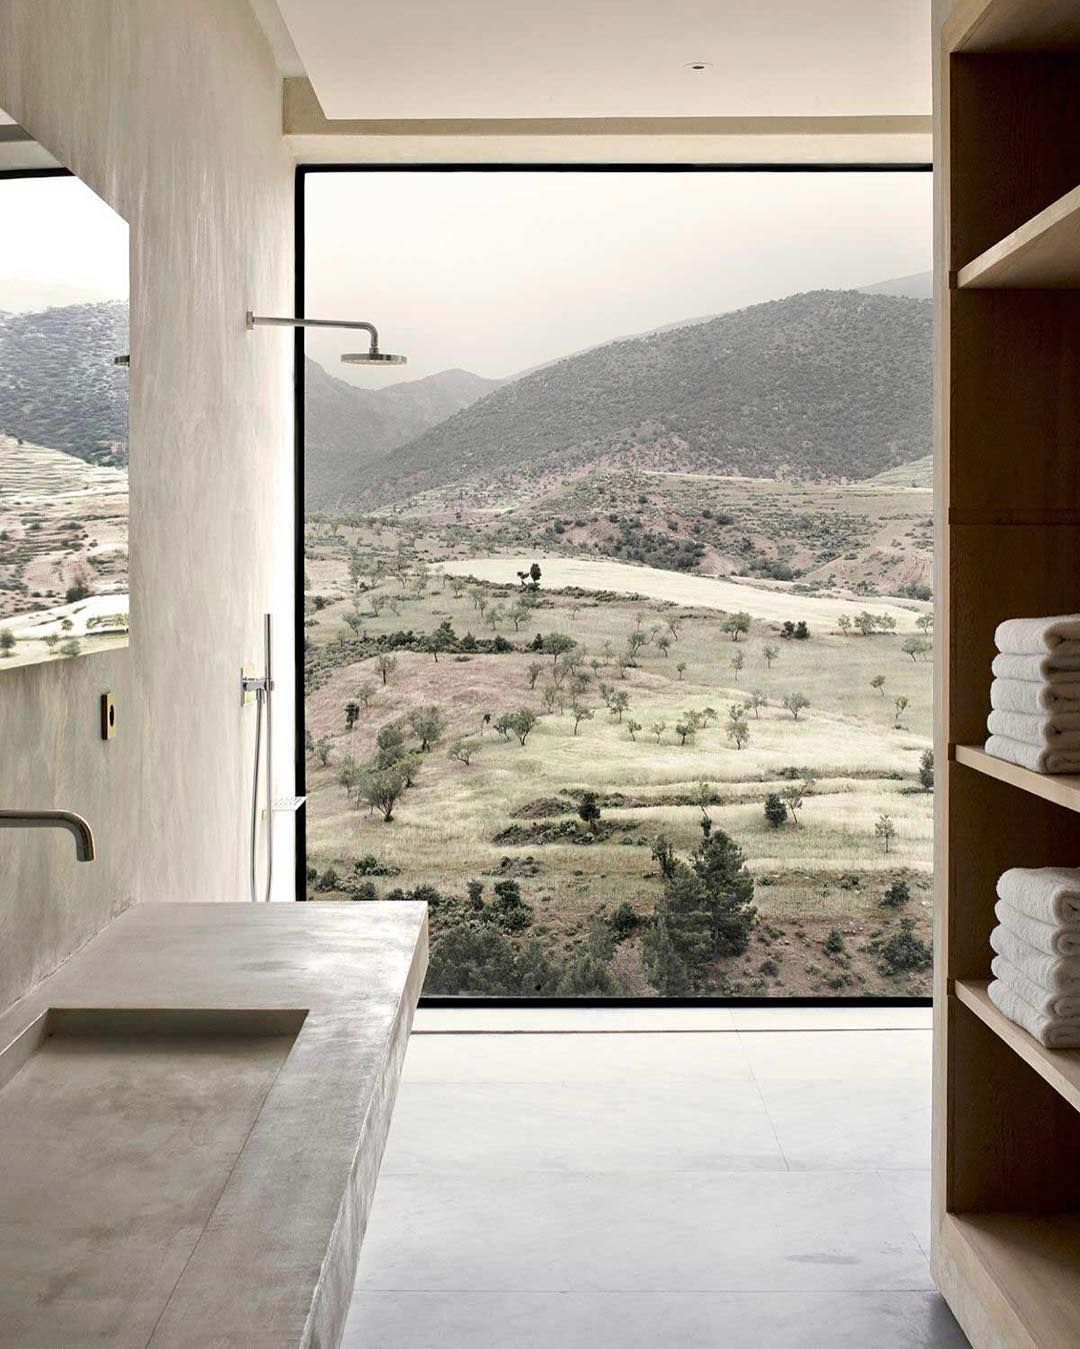 A shower with a view in this mountain lodge located in the foothills of the Atlas Mountains in Morocco. Follow @g for more great content. by roomporn